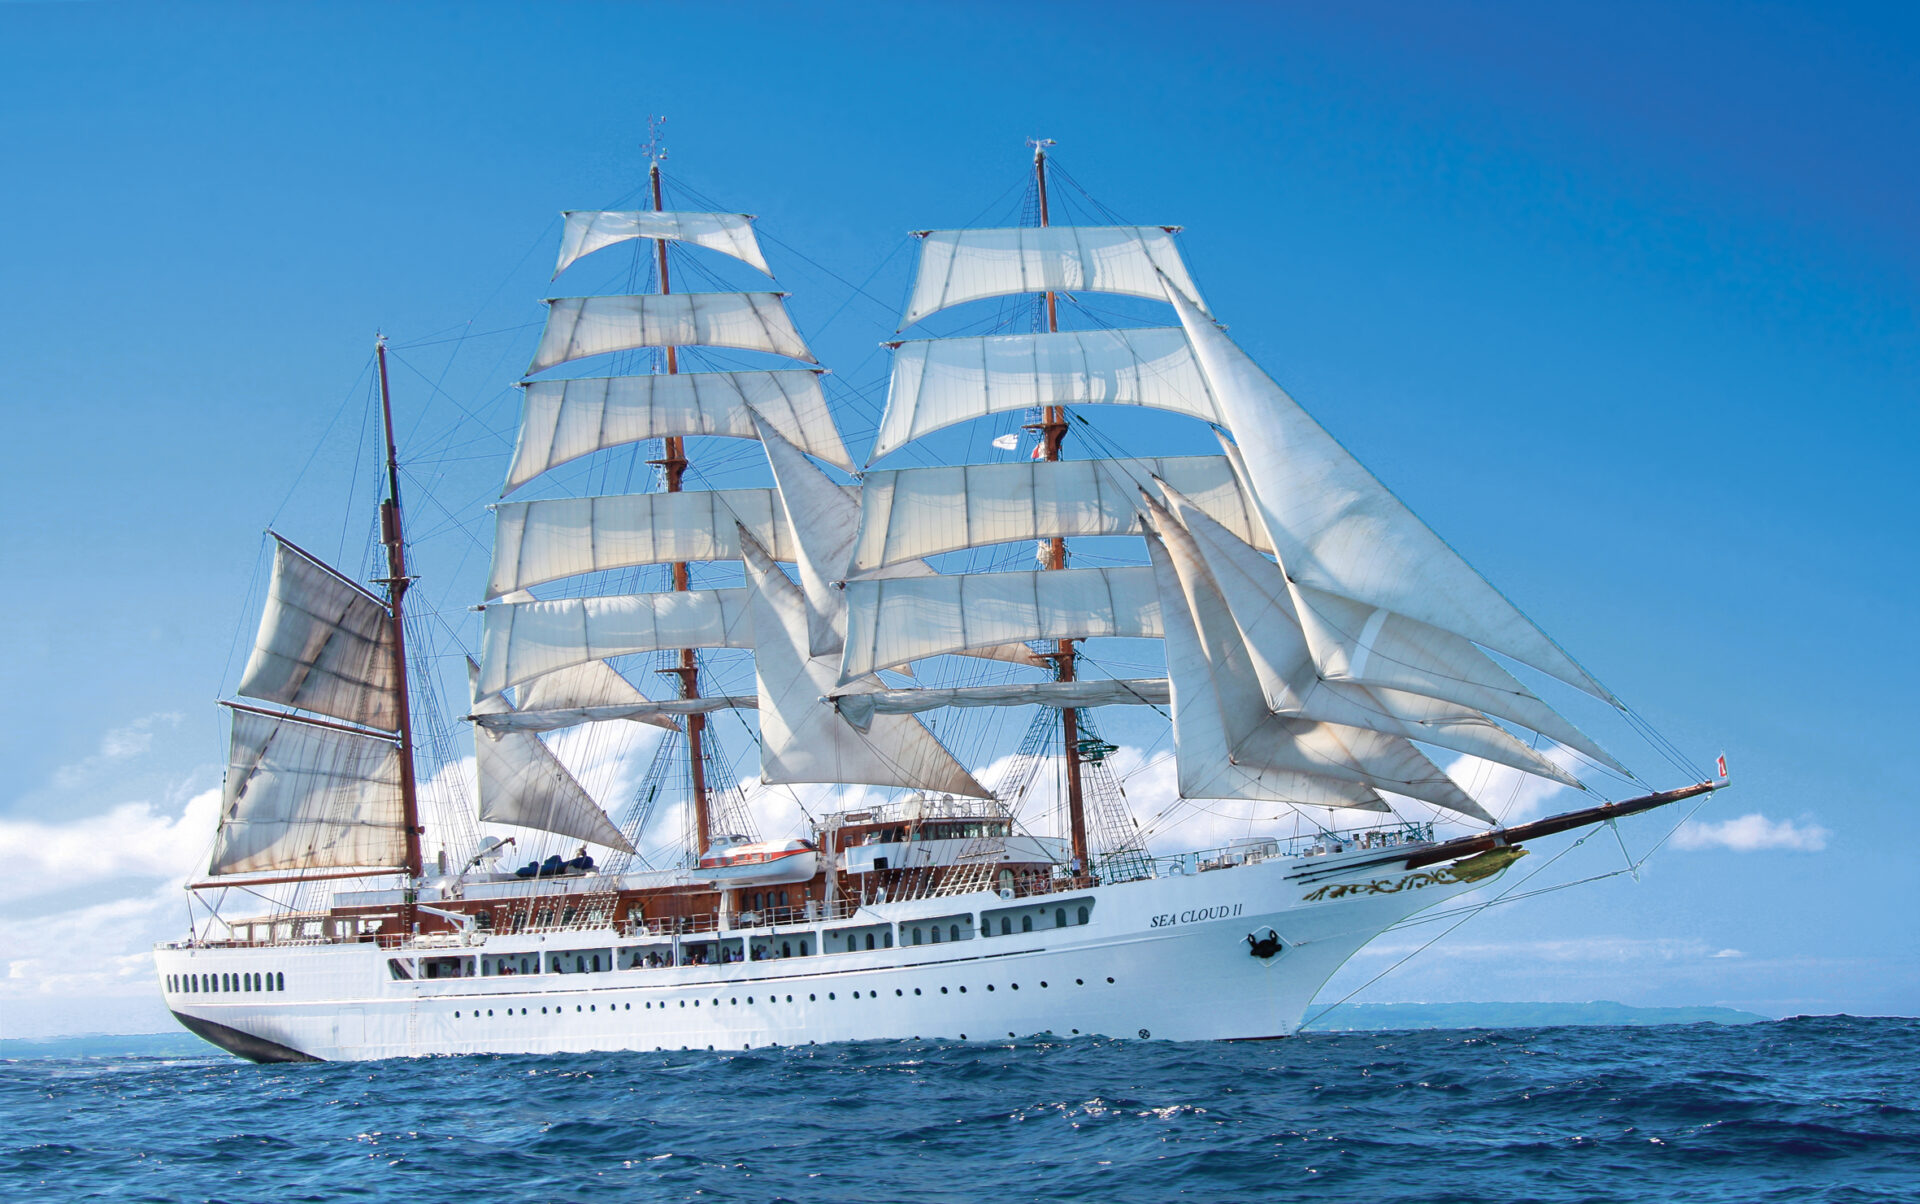 White tall masted ship